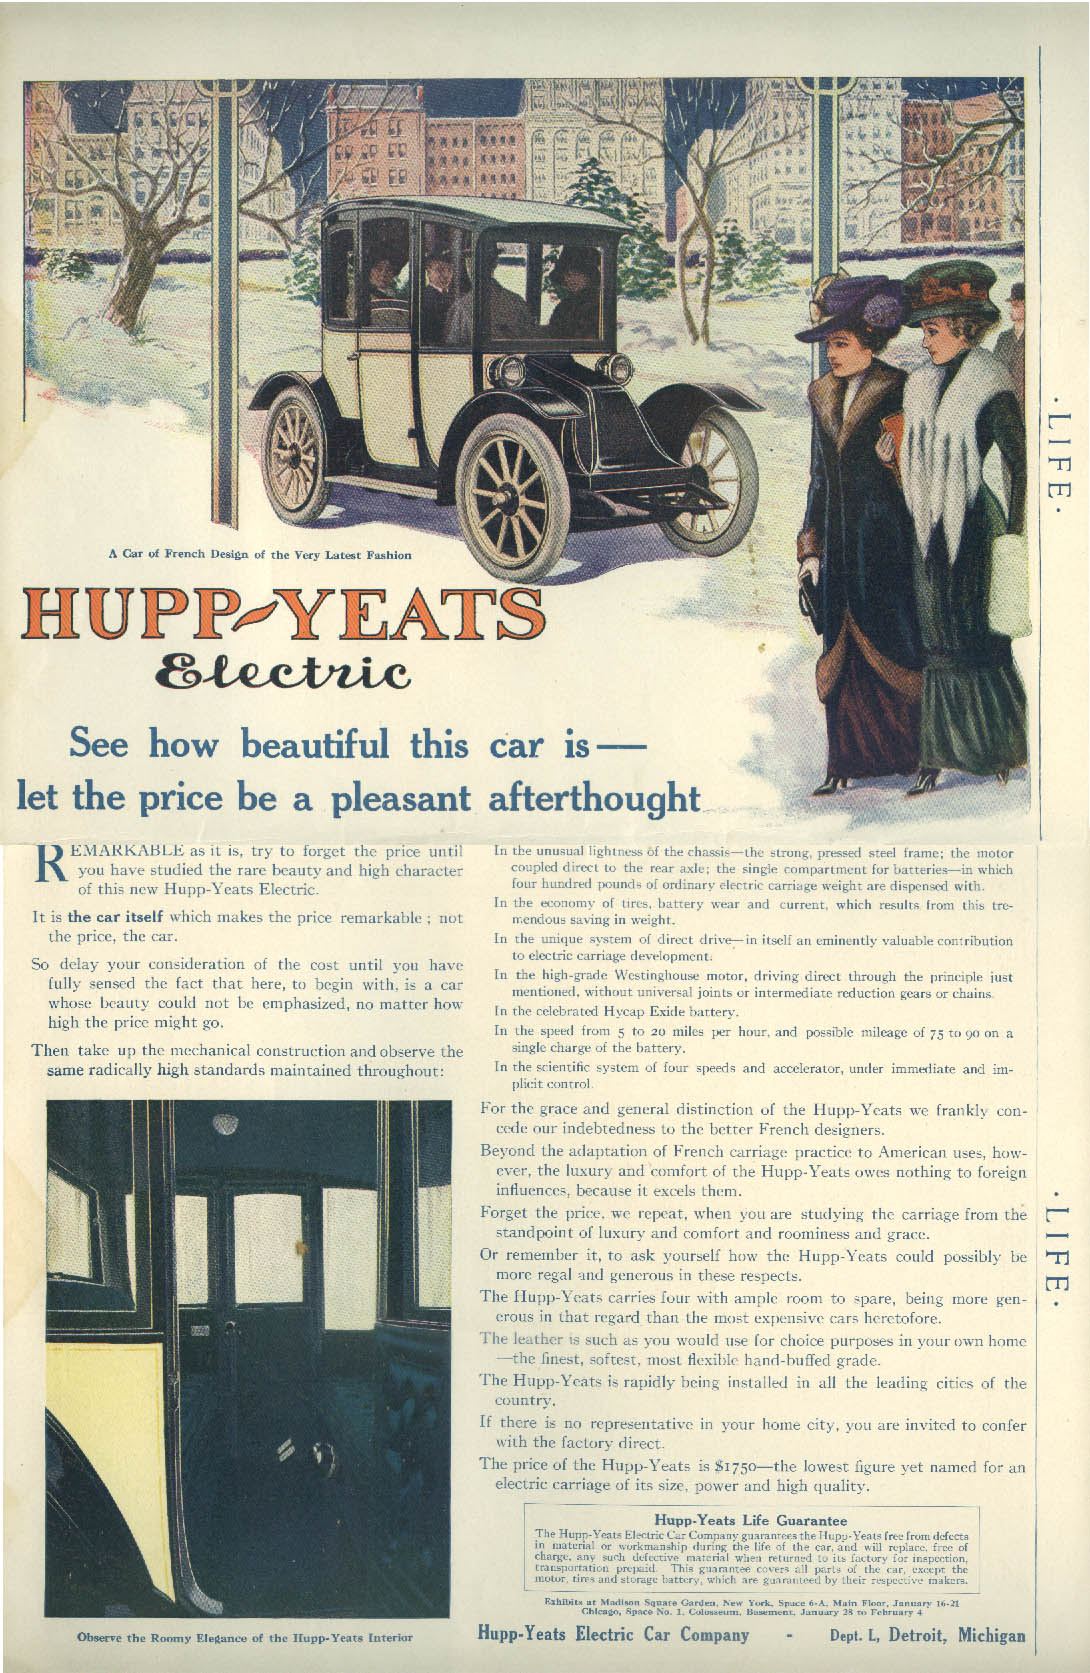 Hupp-Yeats Electric beautiful car / Oldsmobile Car of Today & Tomorrow ad 1911